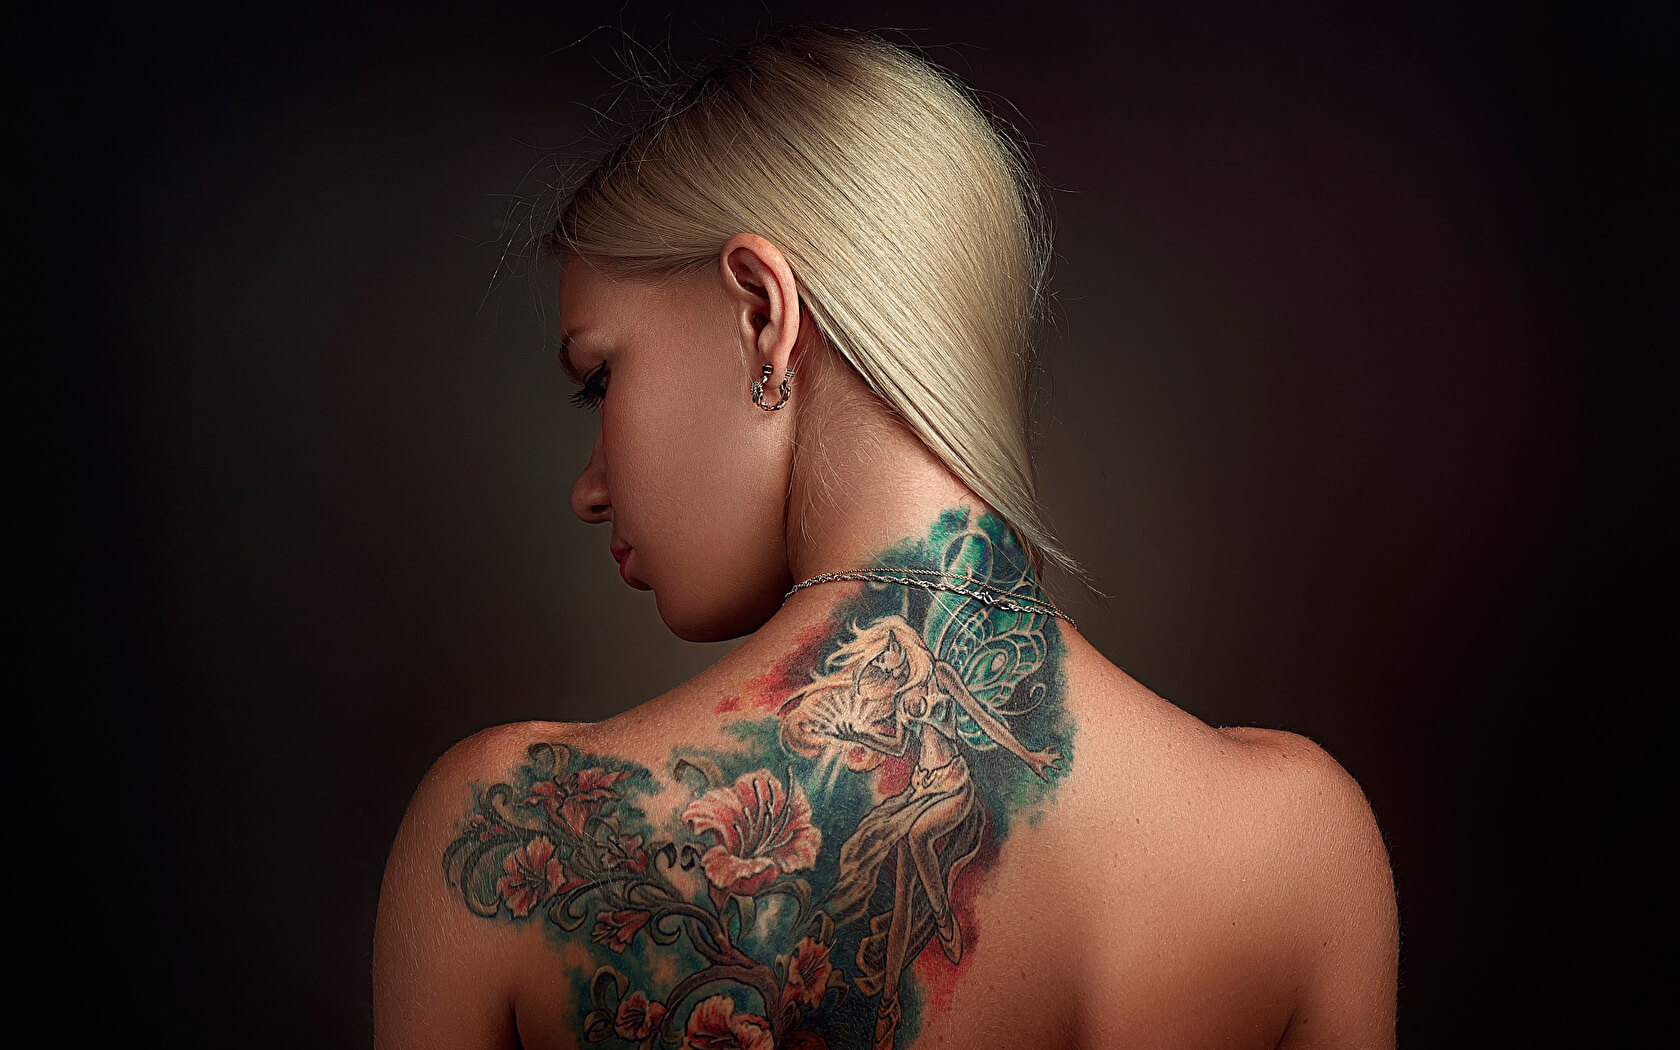 100 most beautiful tattoos in the world: works of art